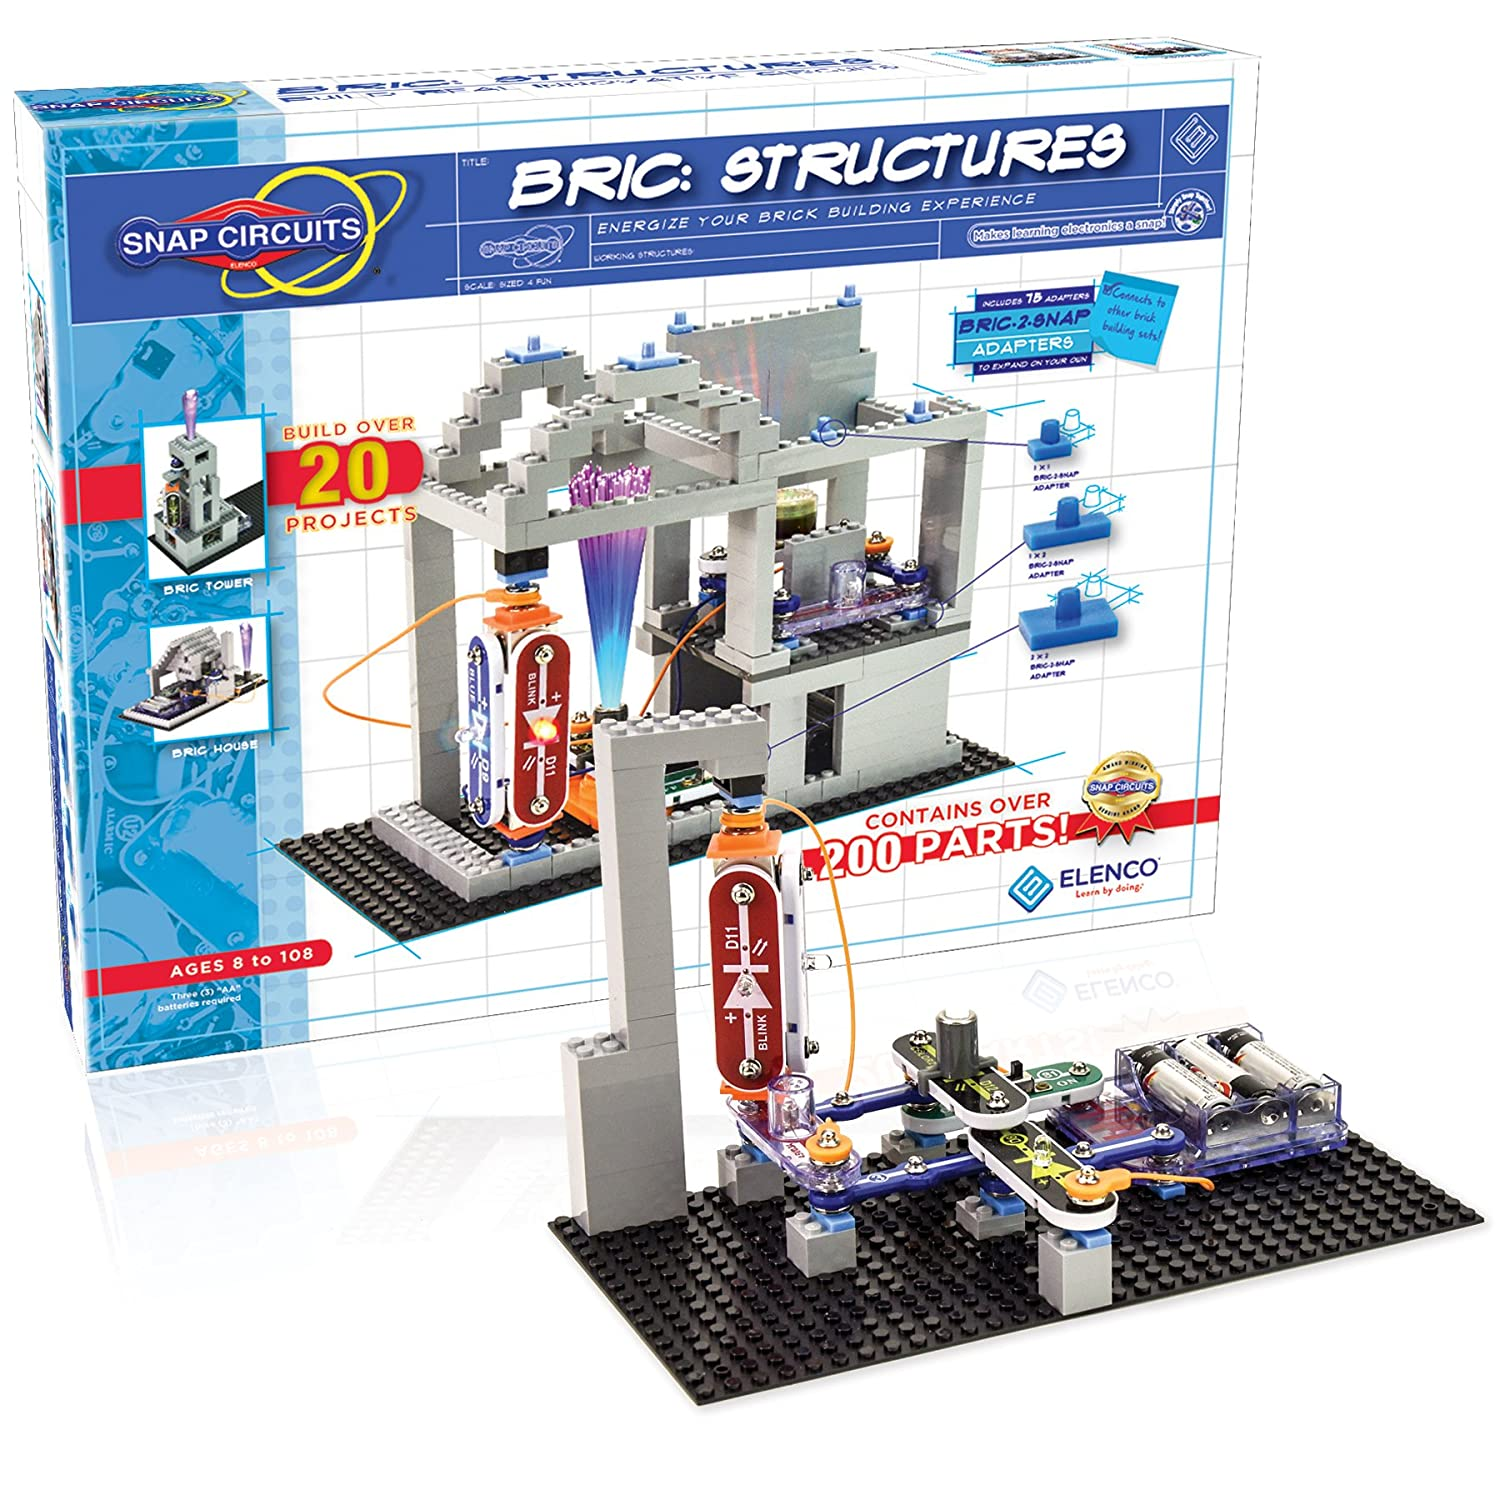 Snap Circuits Bric Structures Brick And Electronics Exploration New Circuitsr Sound Scs185 Gtin Stock Now Kit Over 20 Stem Projects 4 Color Idea Book Modules 75 2